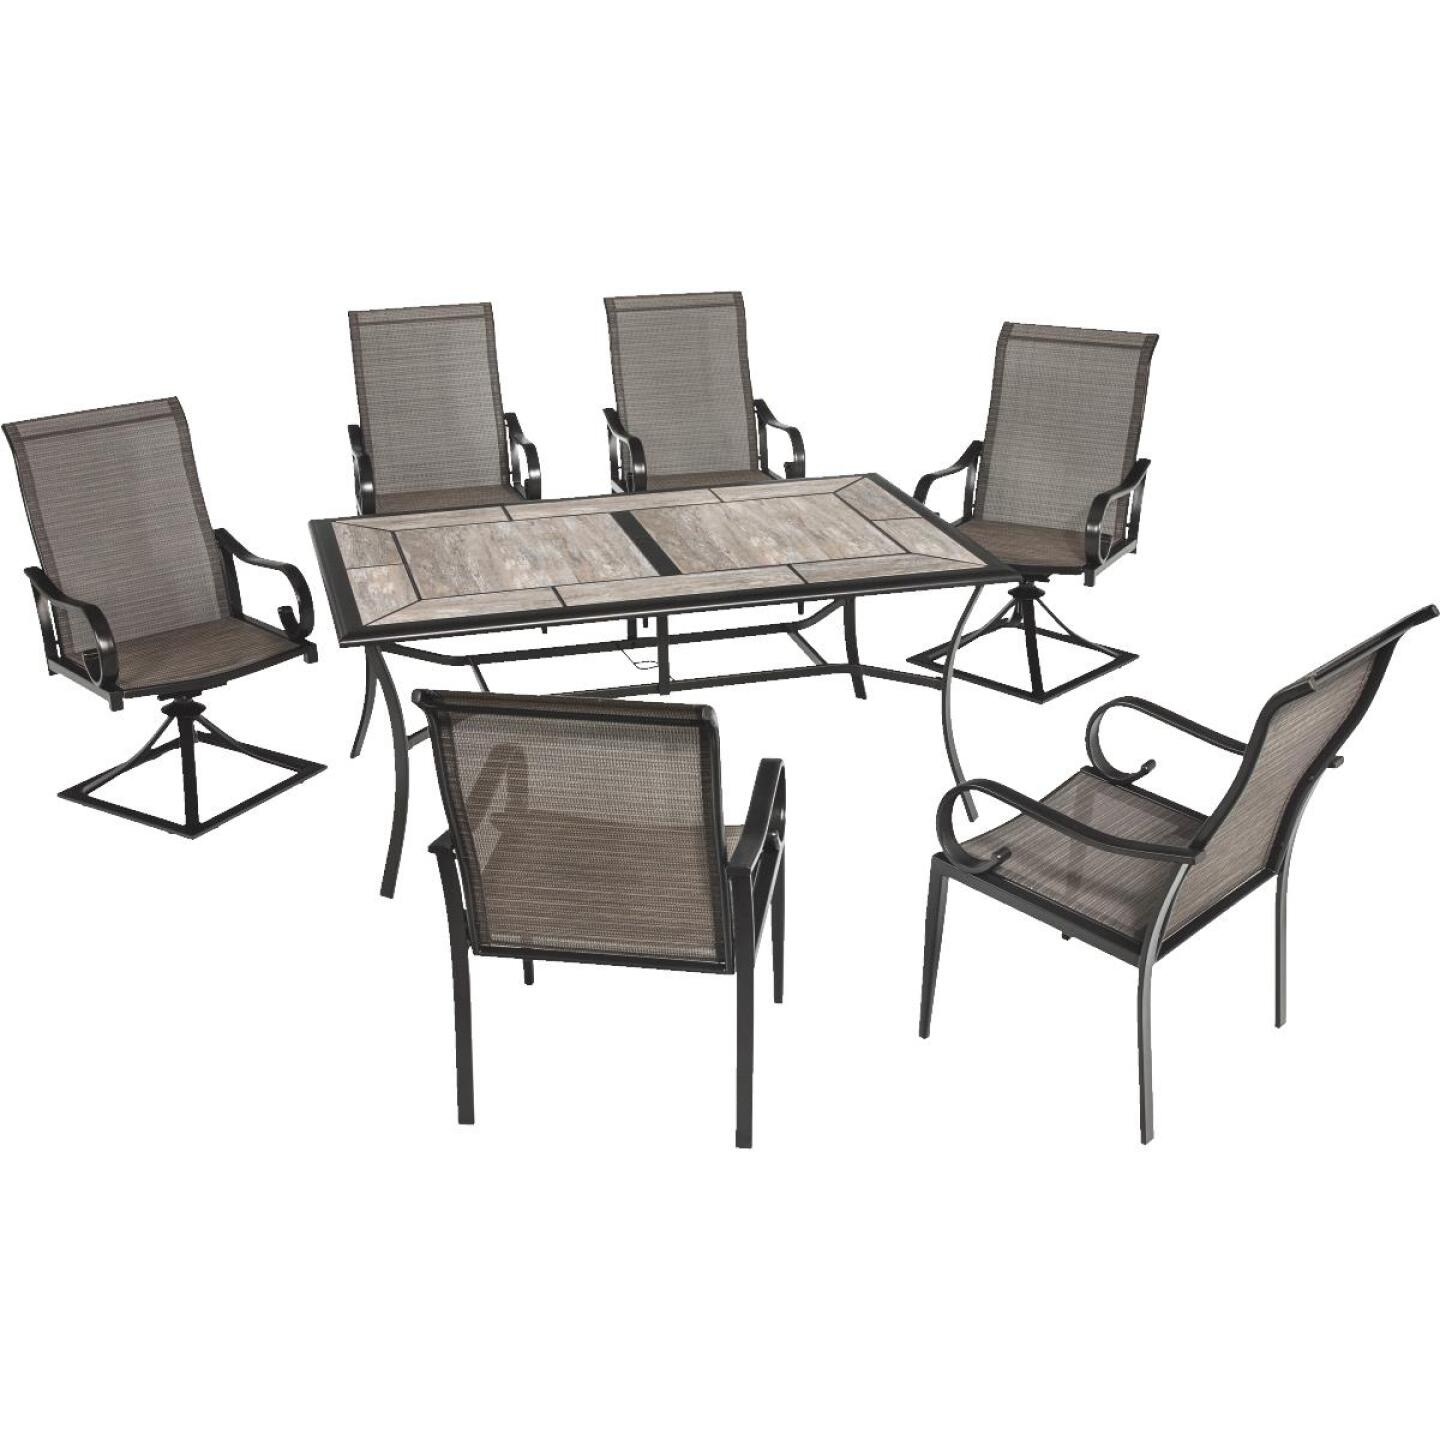 Outdoor Expressions Berkshire 7-Piece Dining Set Image 354